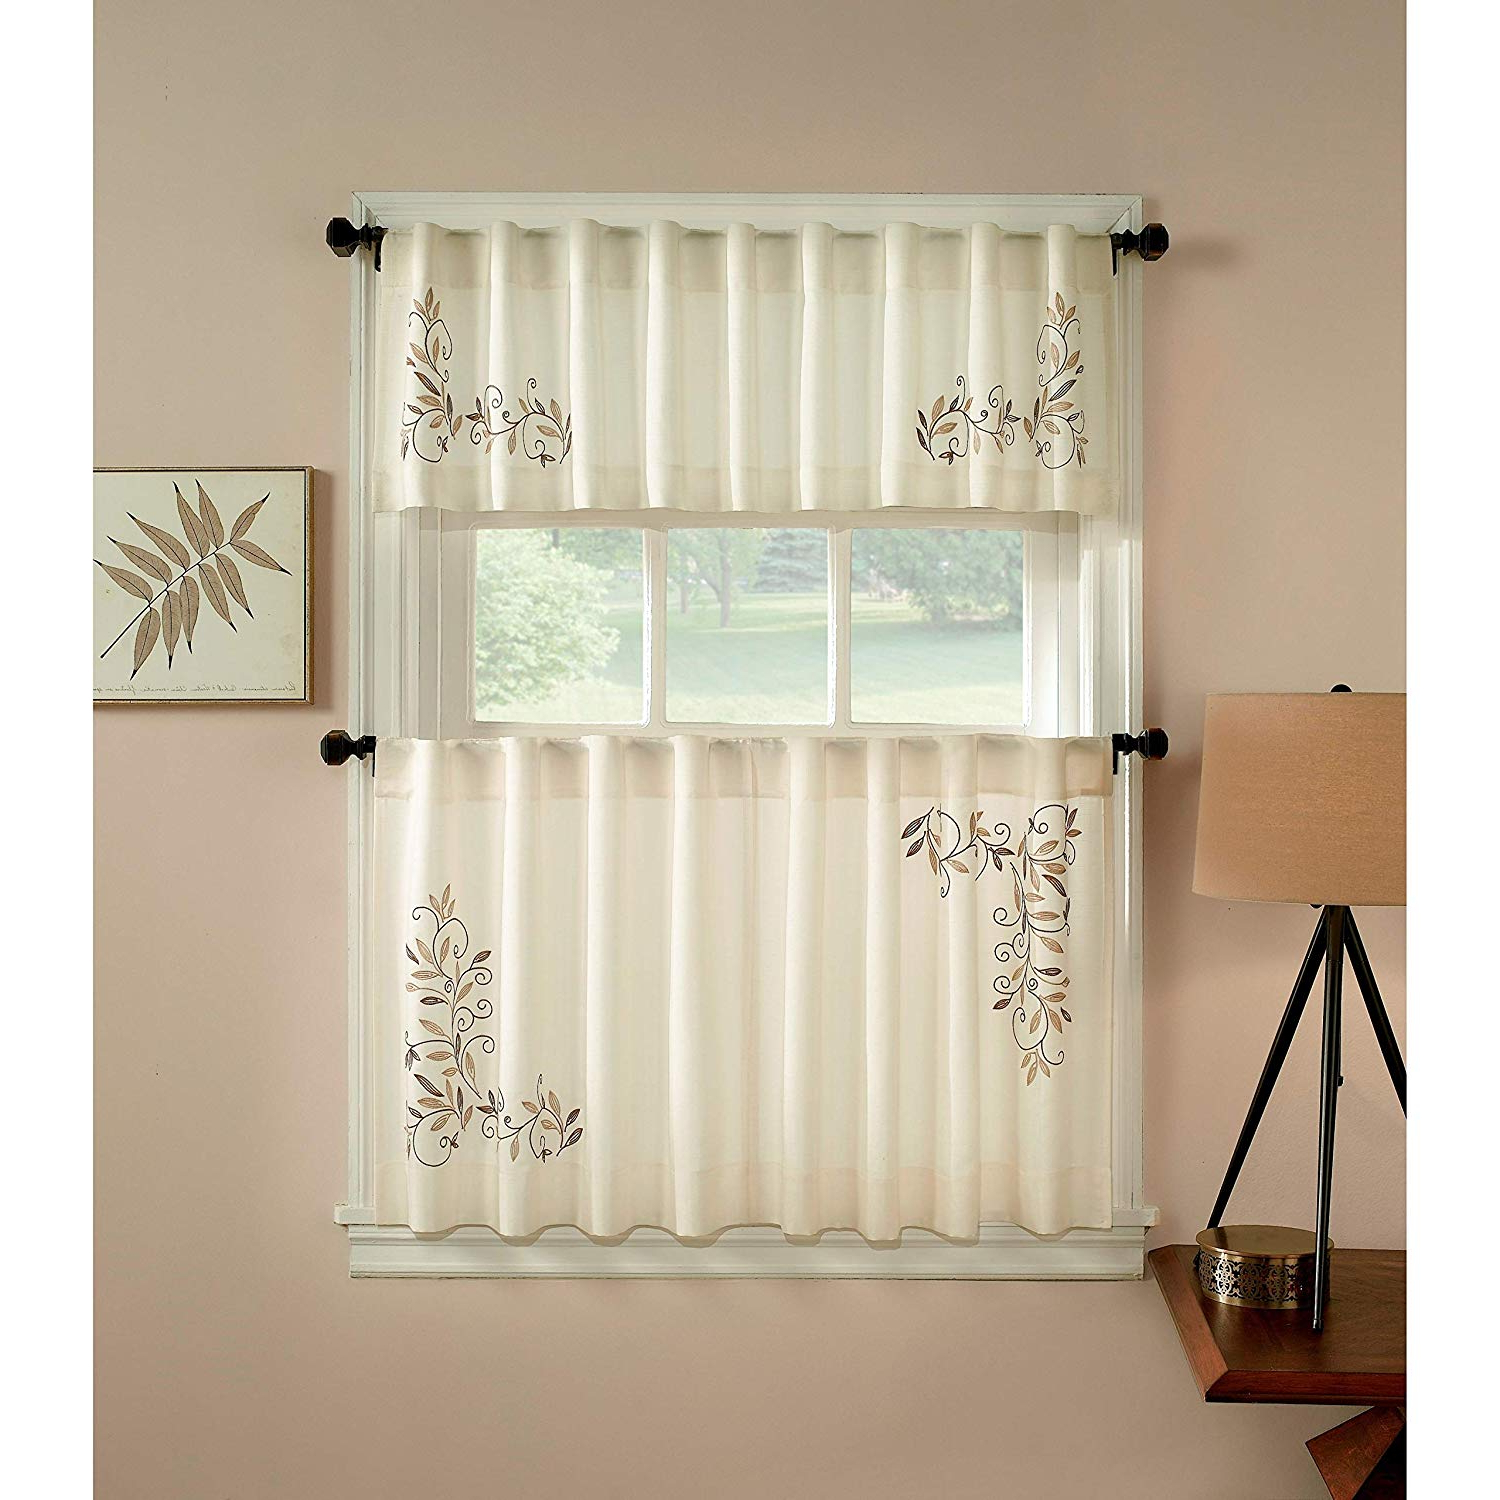 Preferred Window Curtain Tier And Valance Sets Intended For Amazon: Chf Industries Scroll Leaf 3 Piece Curtain Tier (View 5 of 20)